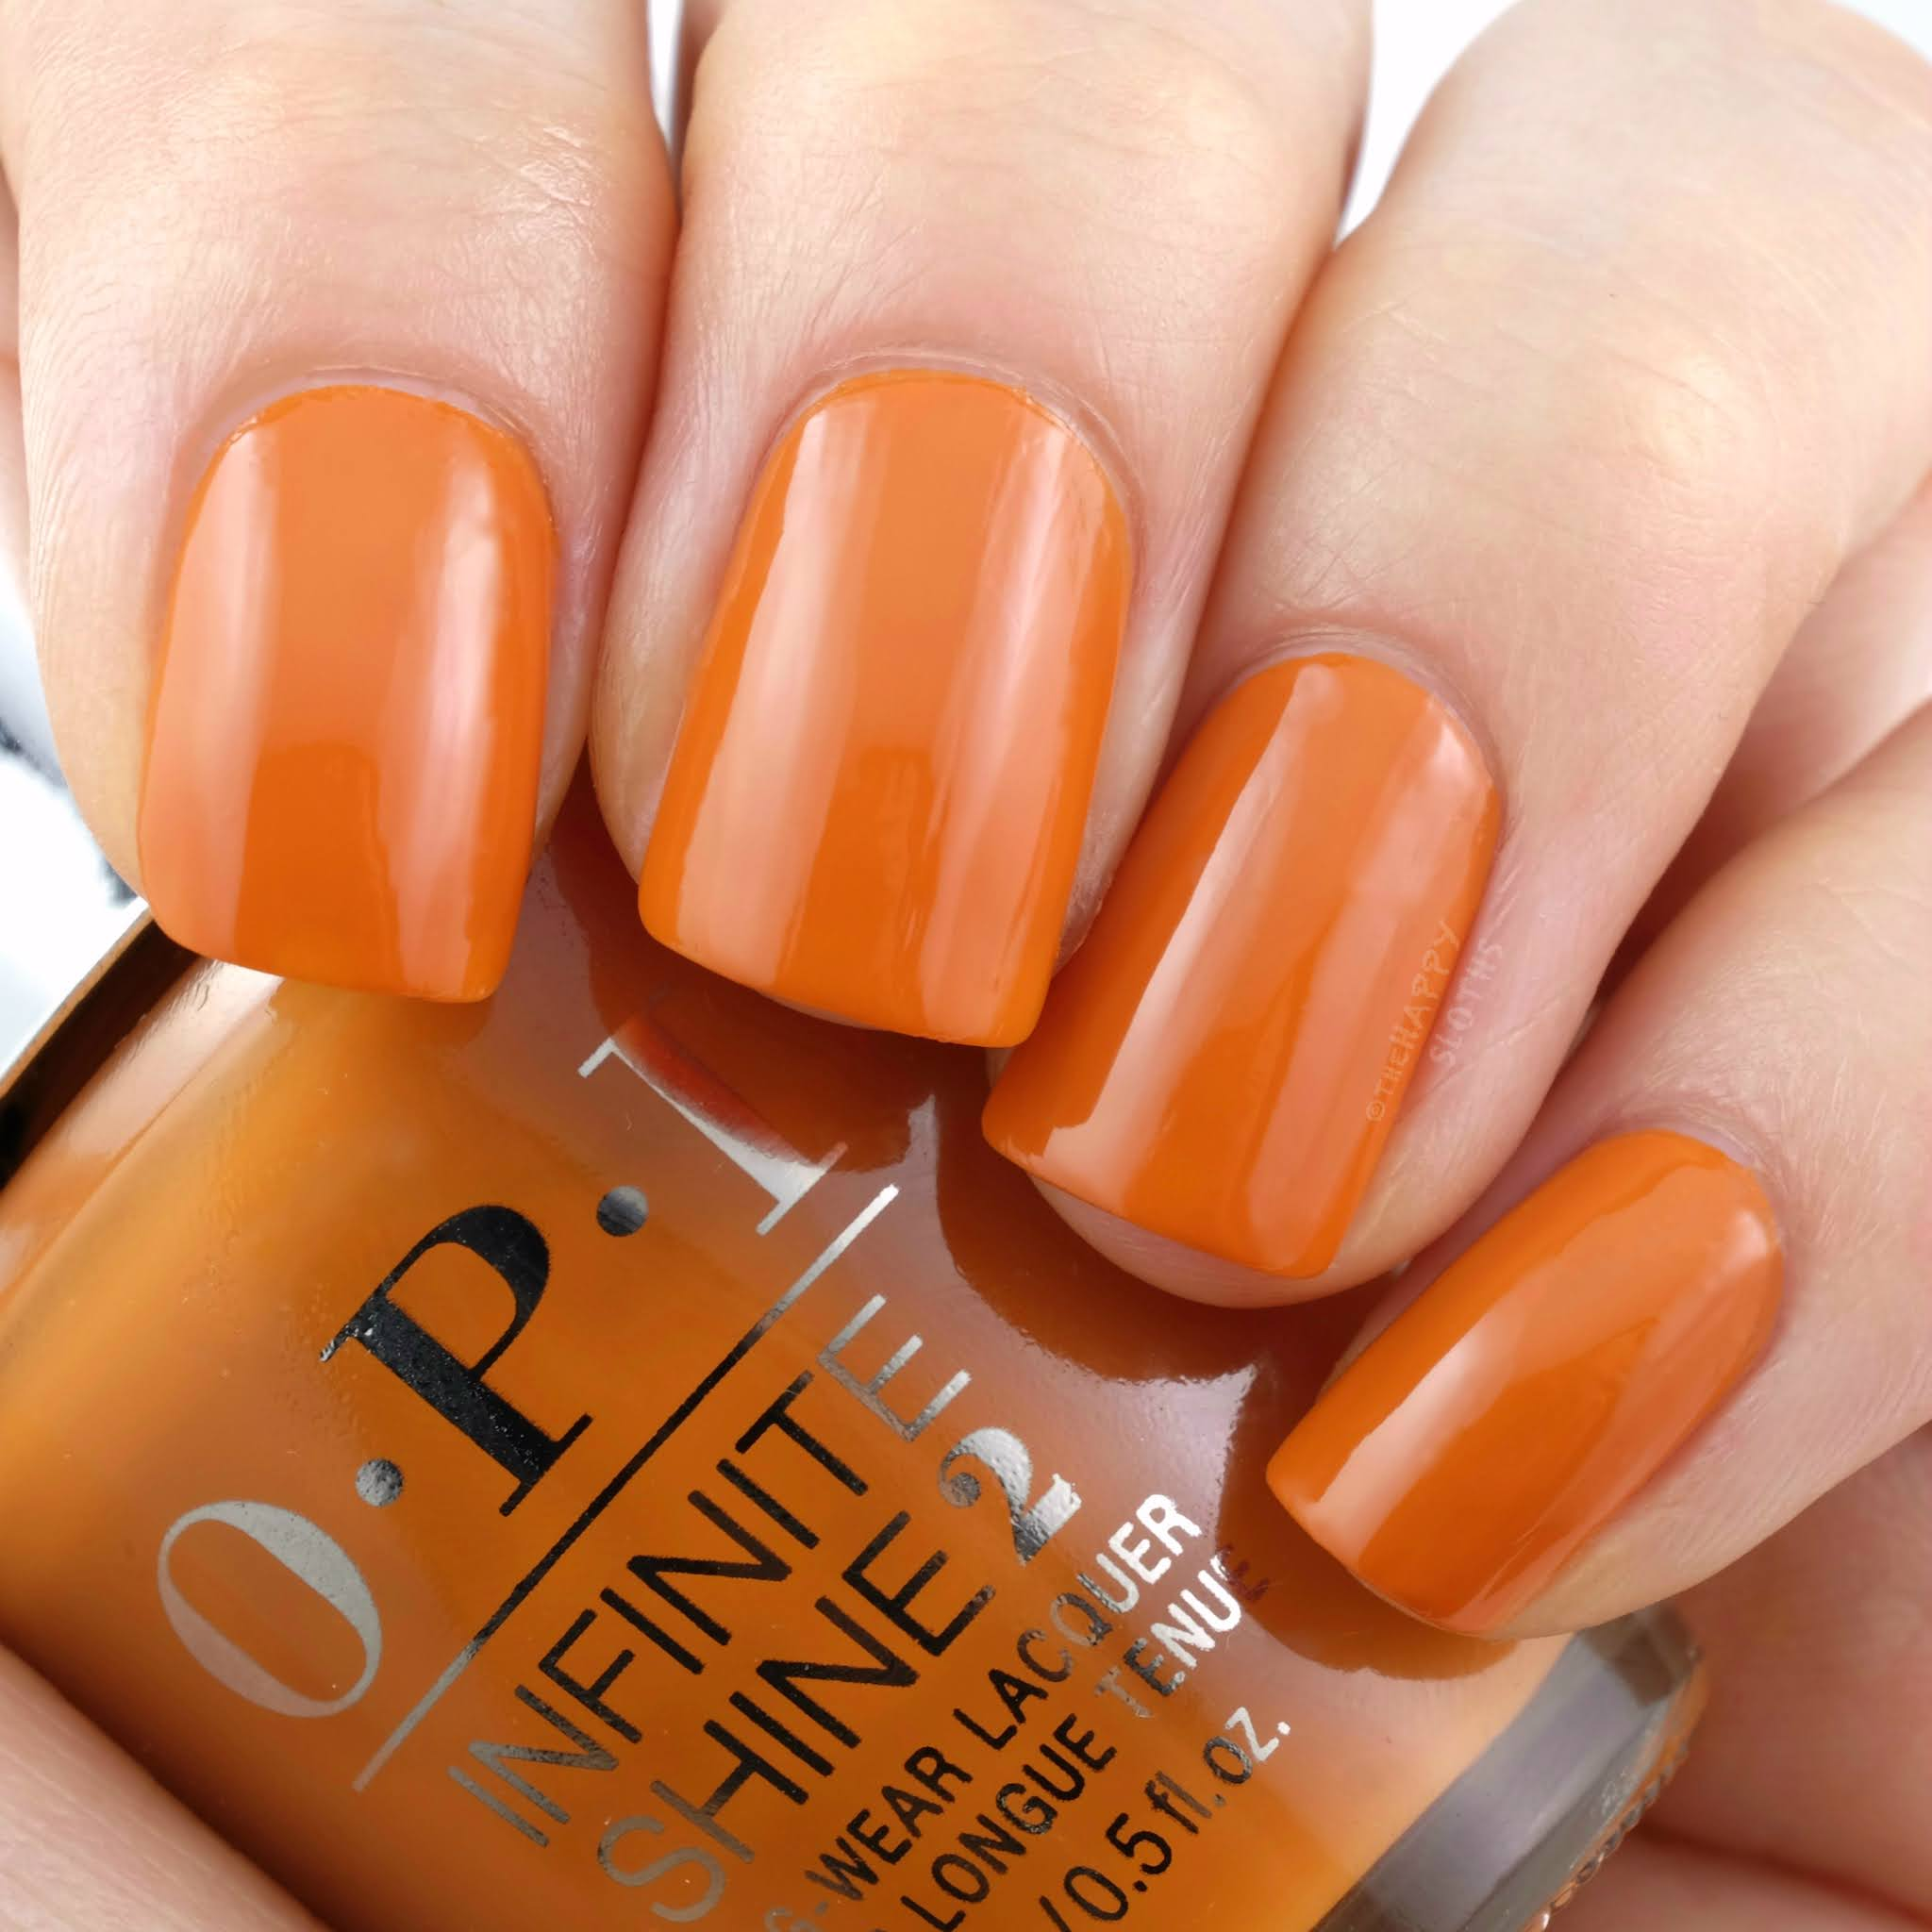 OPI Fall 2020 | Have Your Panettone and Eat It Too: Review and Swatches